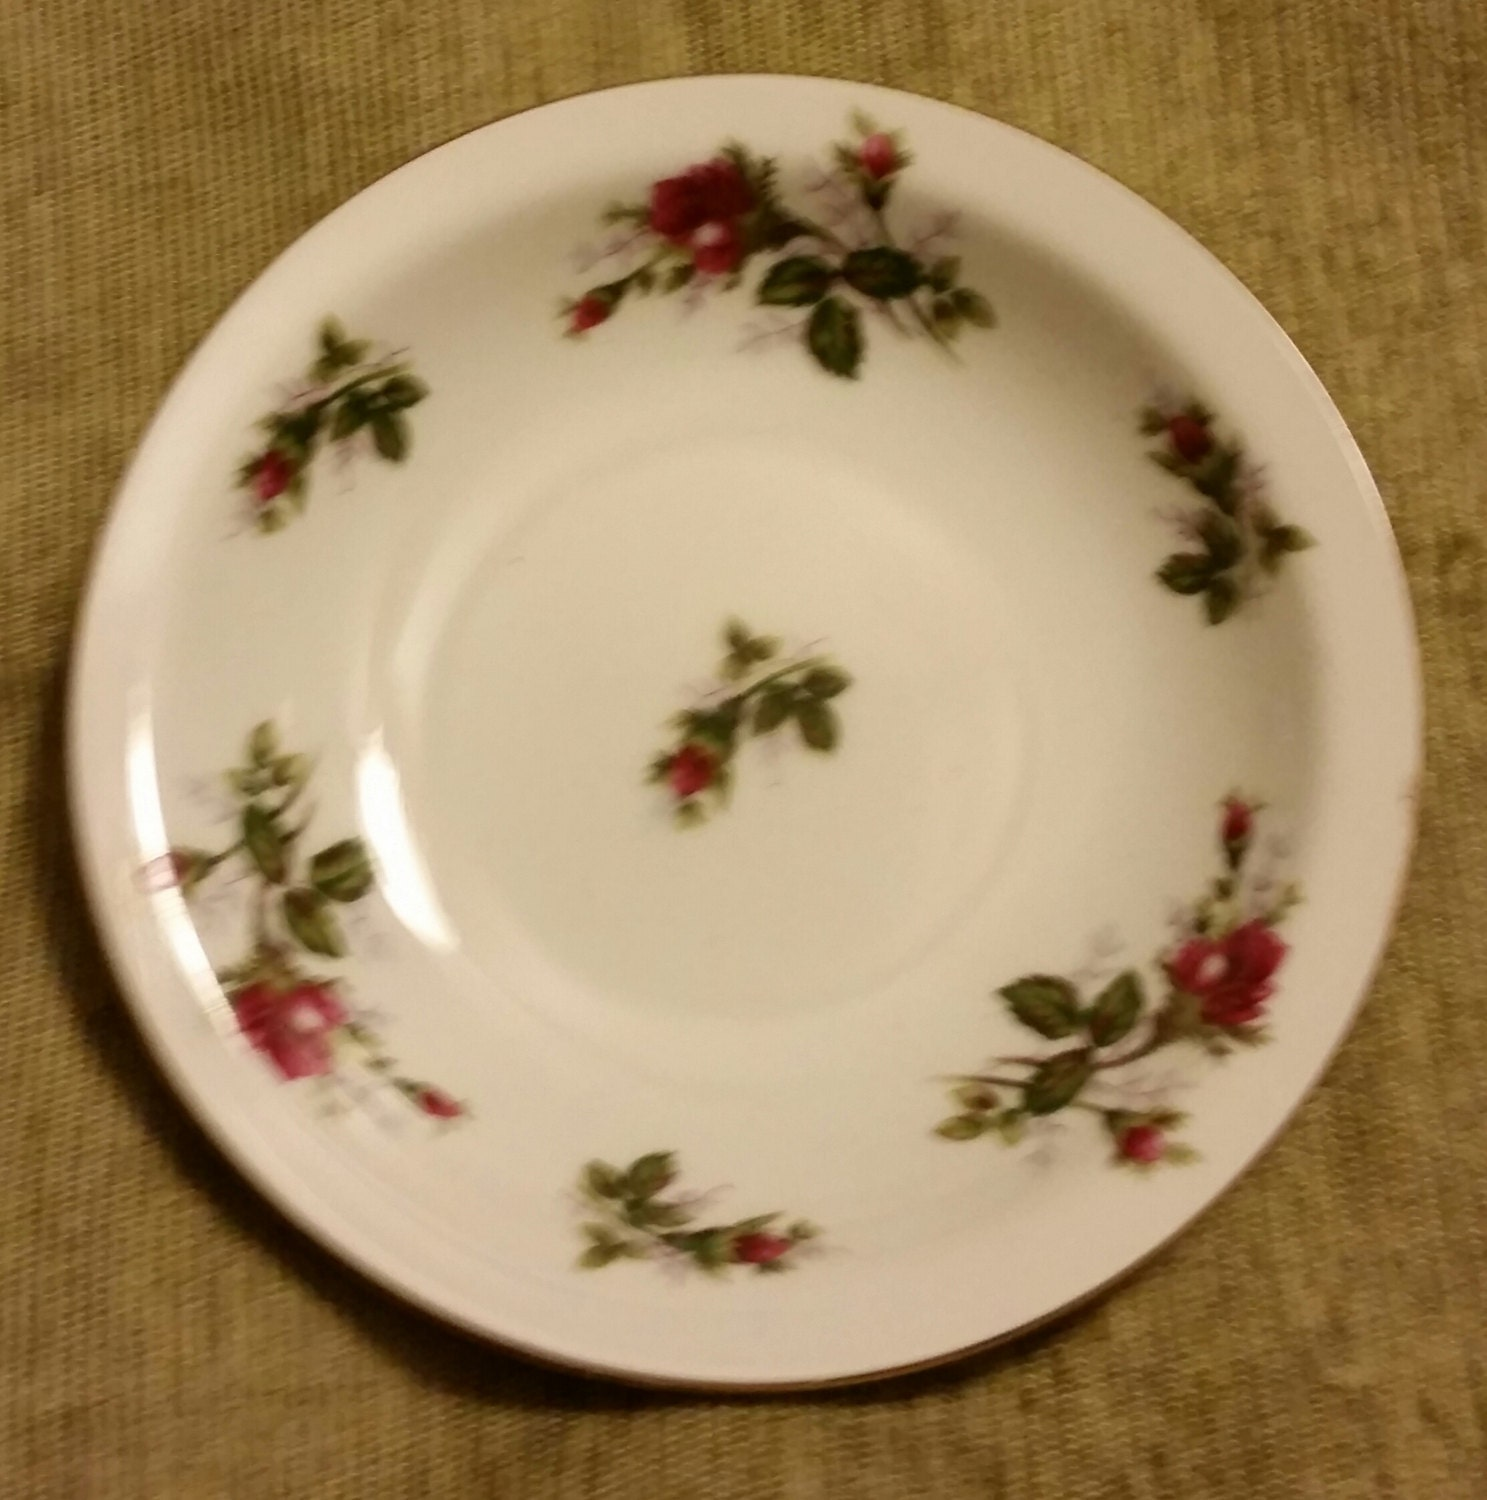 Rose Pattern China Awesome Design Inspiration